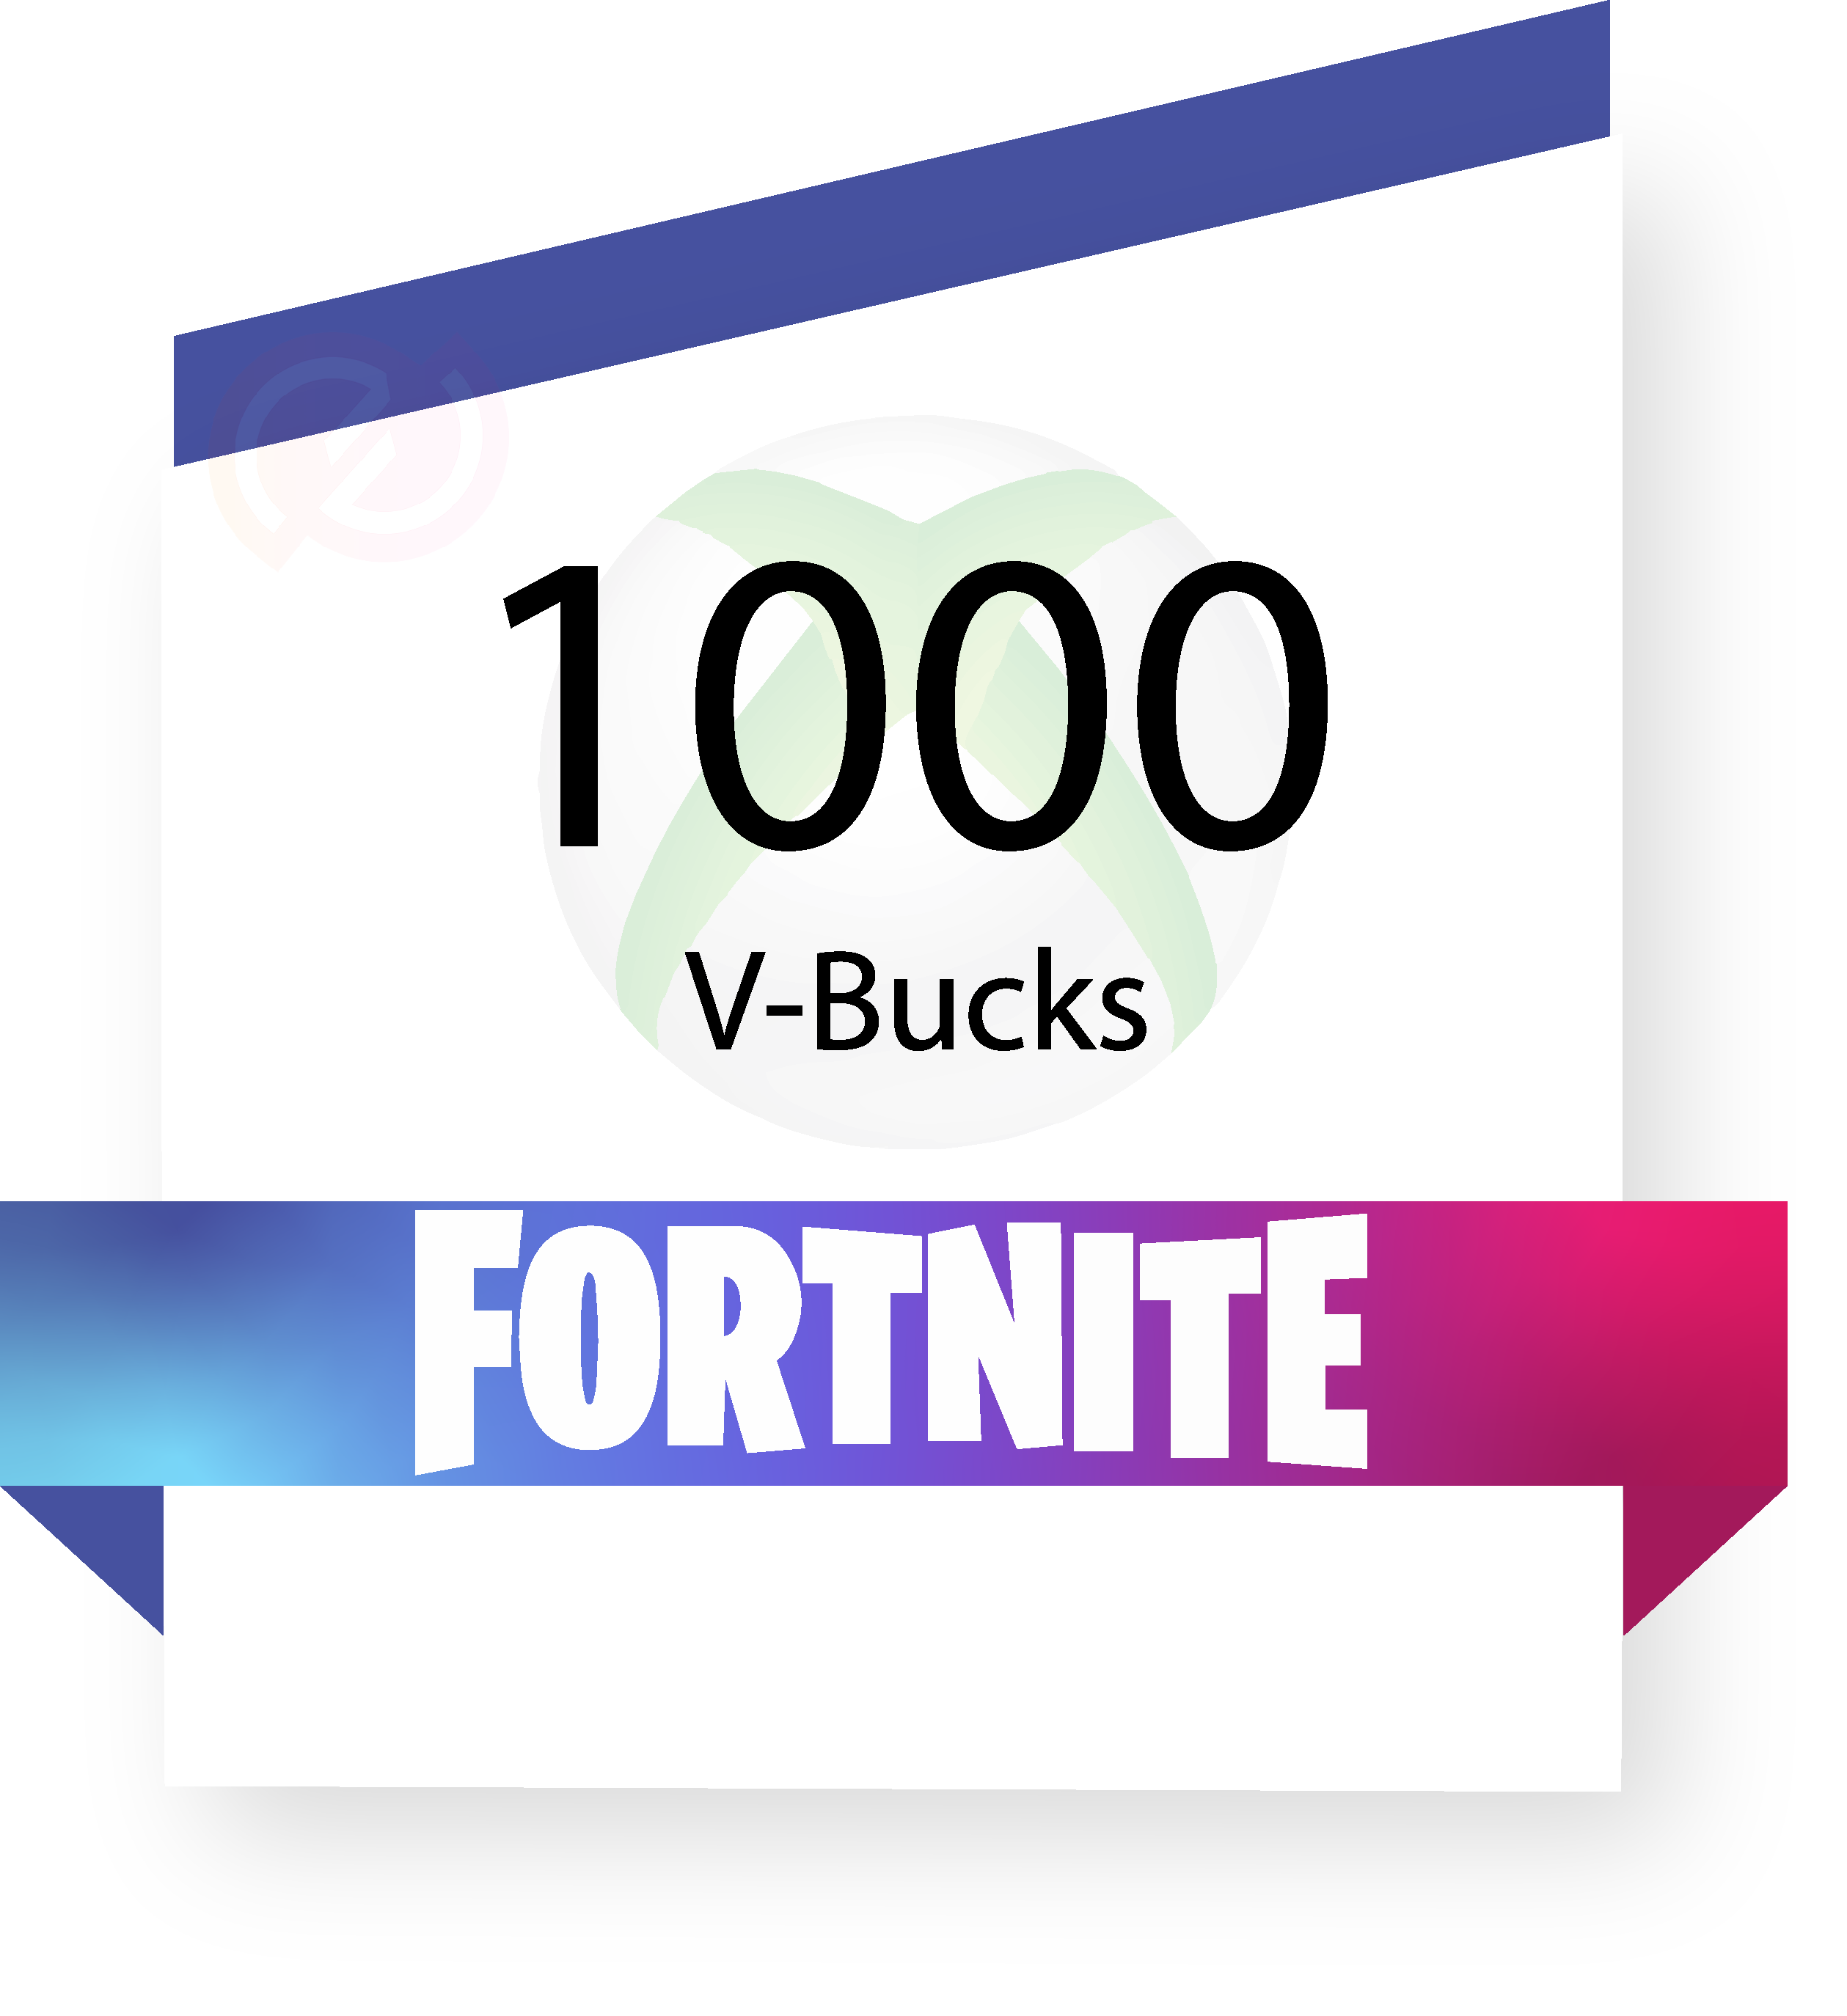 Coupon fortnite-1000vbucks-xbox